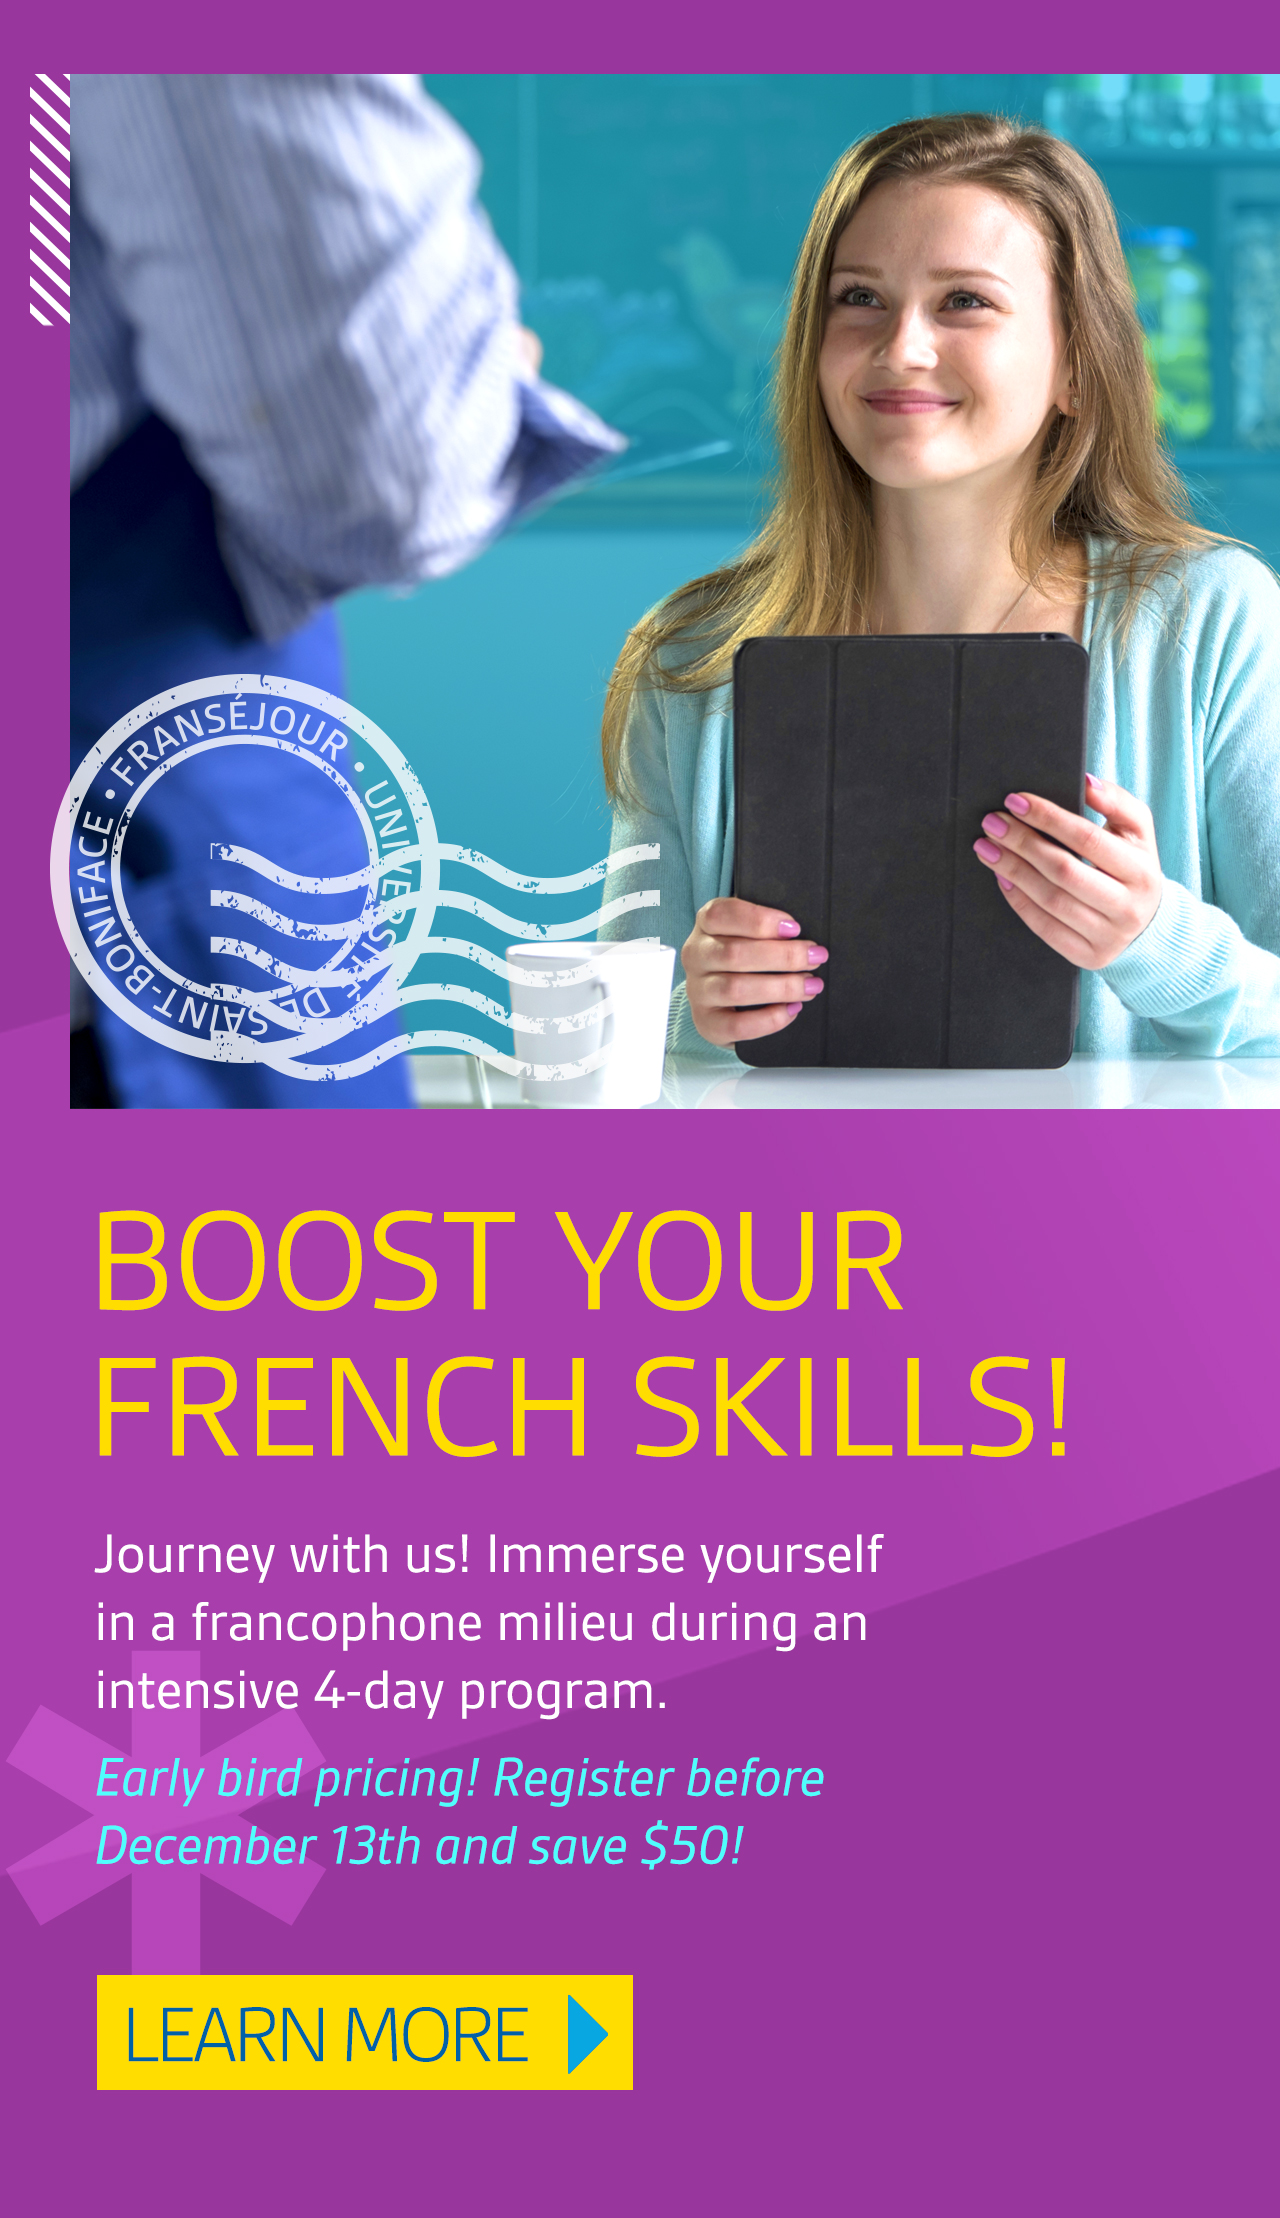 Boost your French skills! Journey with Us! Immerse yourself in a Francophone milieu during an intensive 4-day program. Early bird pricing! Register before December 13th and save $50. Learn more.